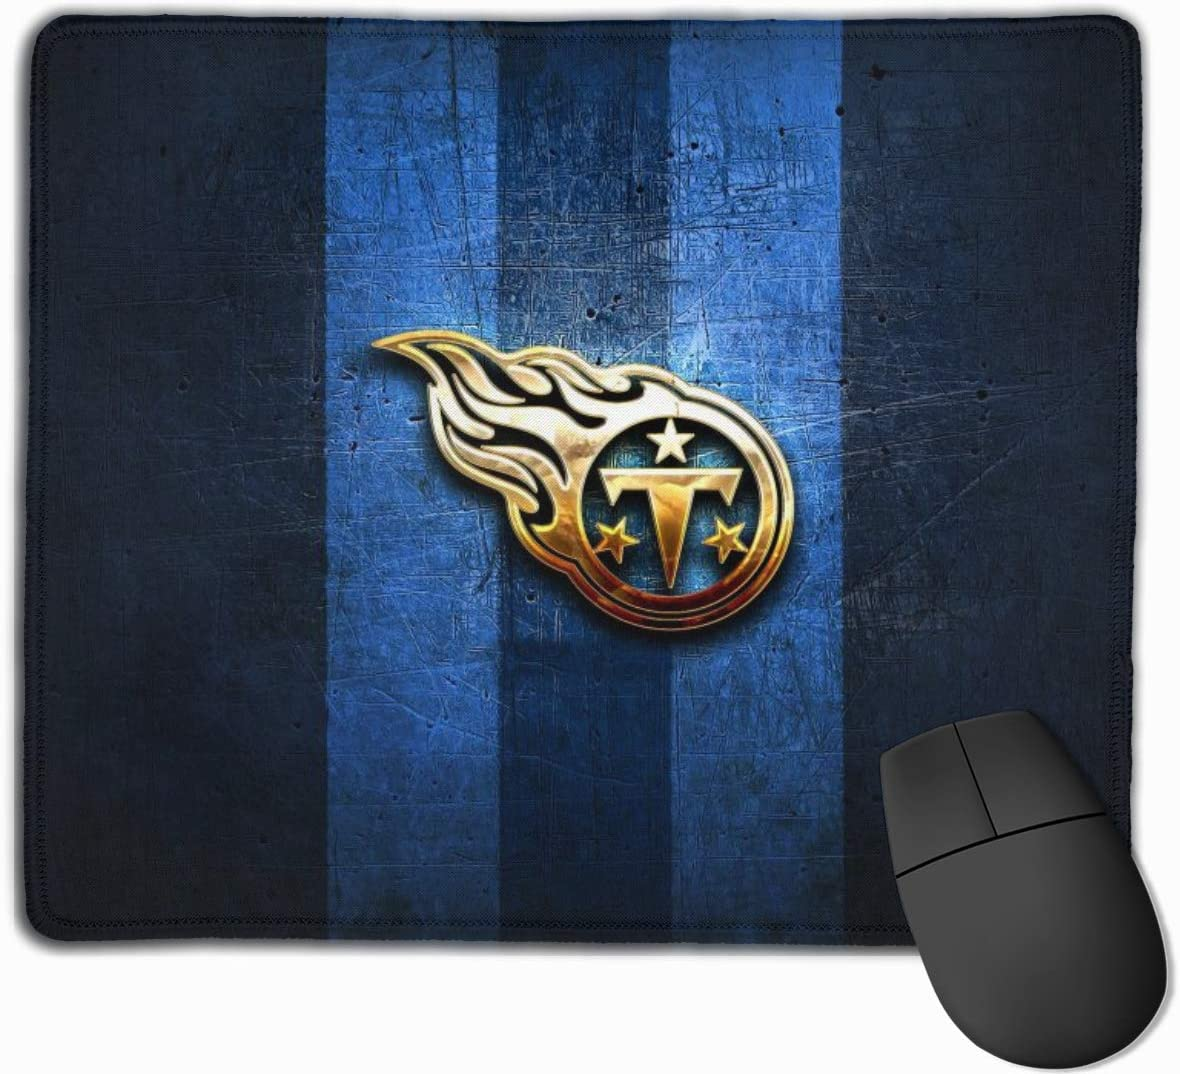 Kanteband Tennessee Titans Non-Slip Rubber Mouse Pad Football Fan Mouse Pad 9.8 Inches X 11.8 Inches